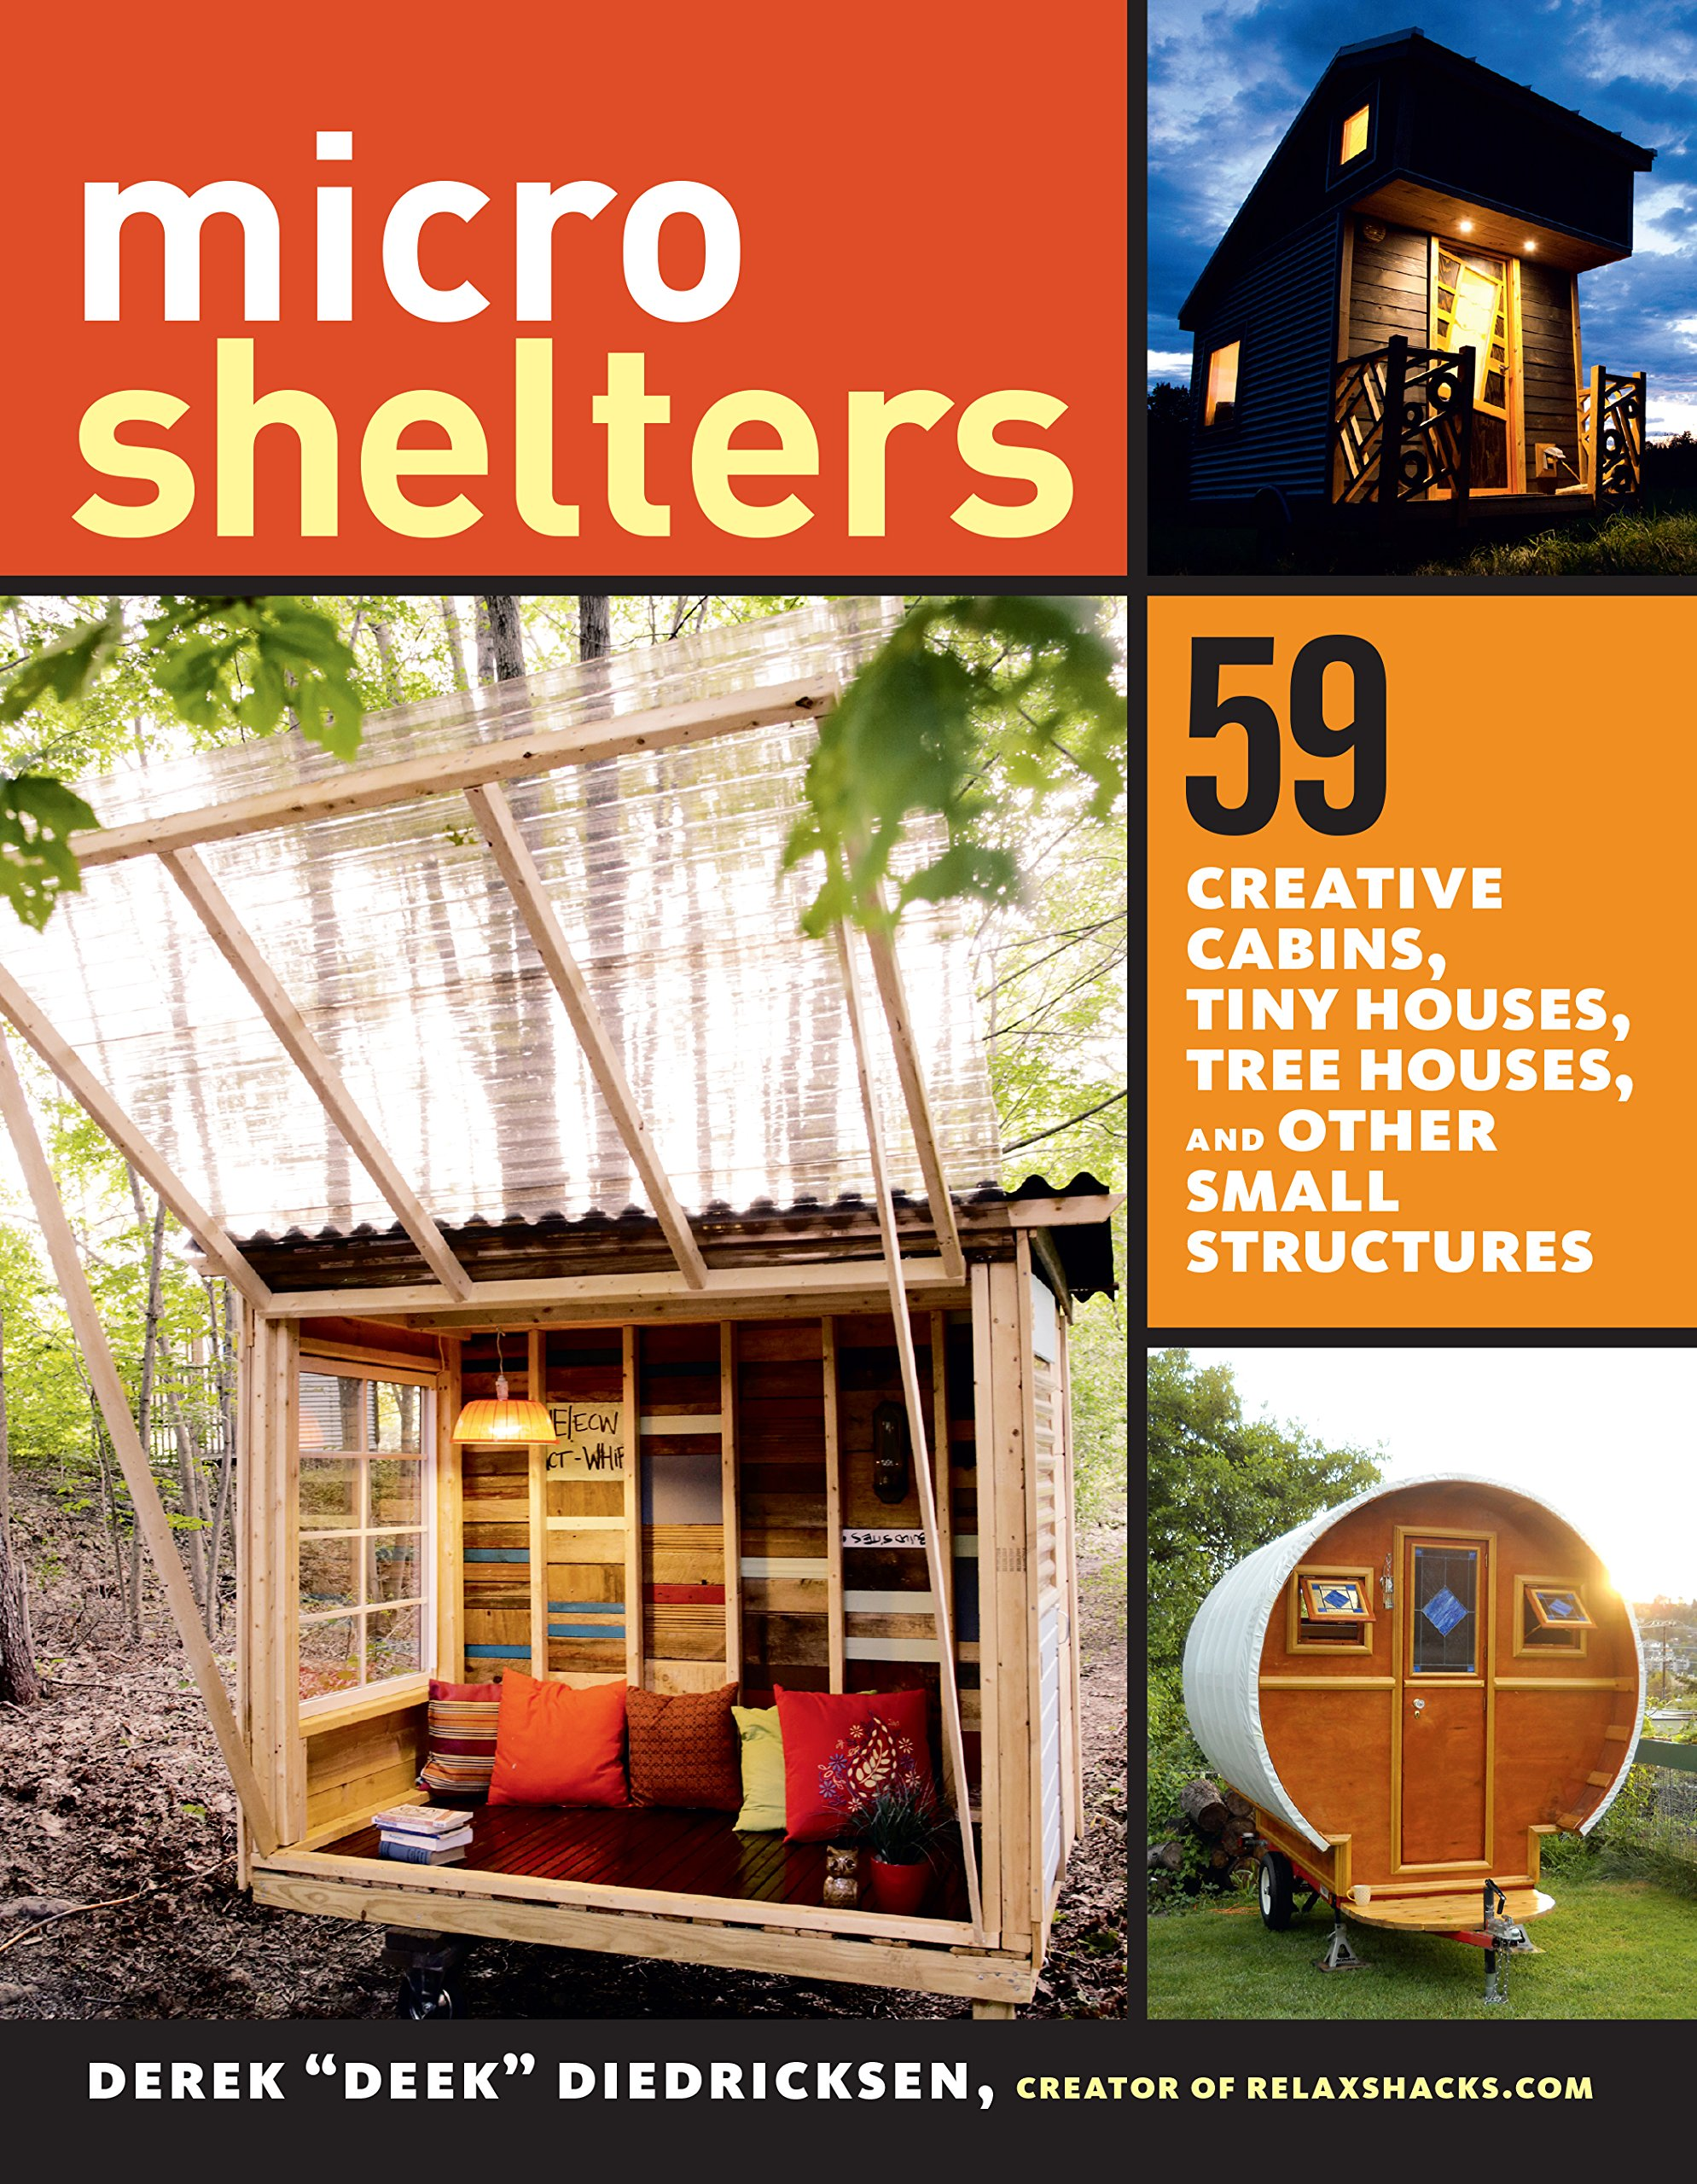 Microshelters: 23 Creative Cabins, Tiny Houses, Tree Houses, and